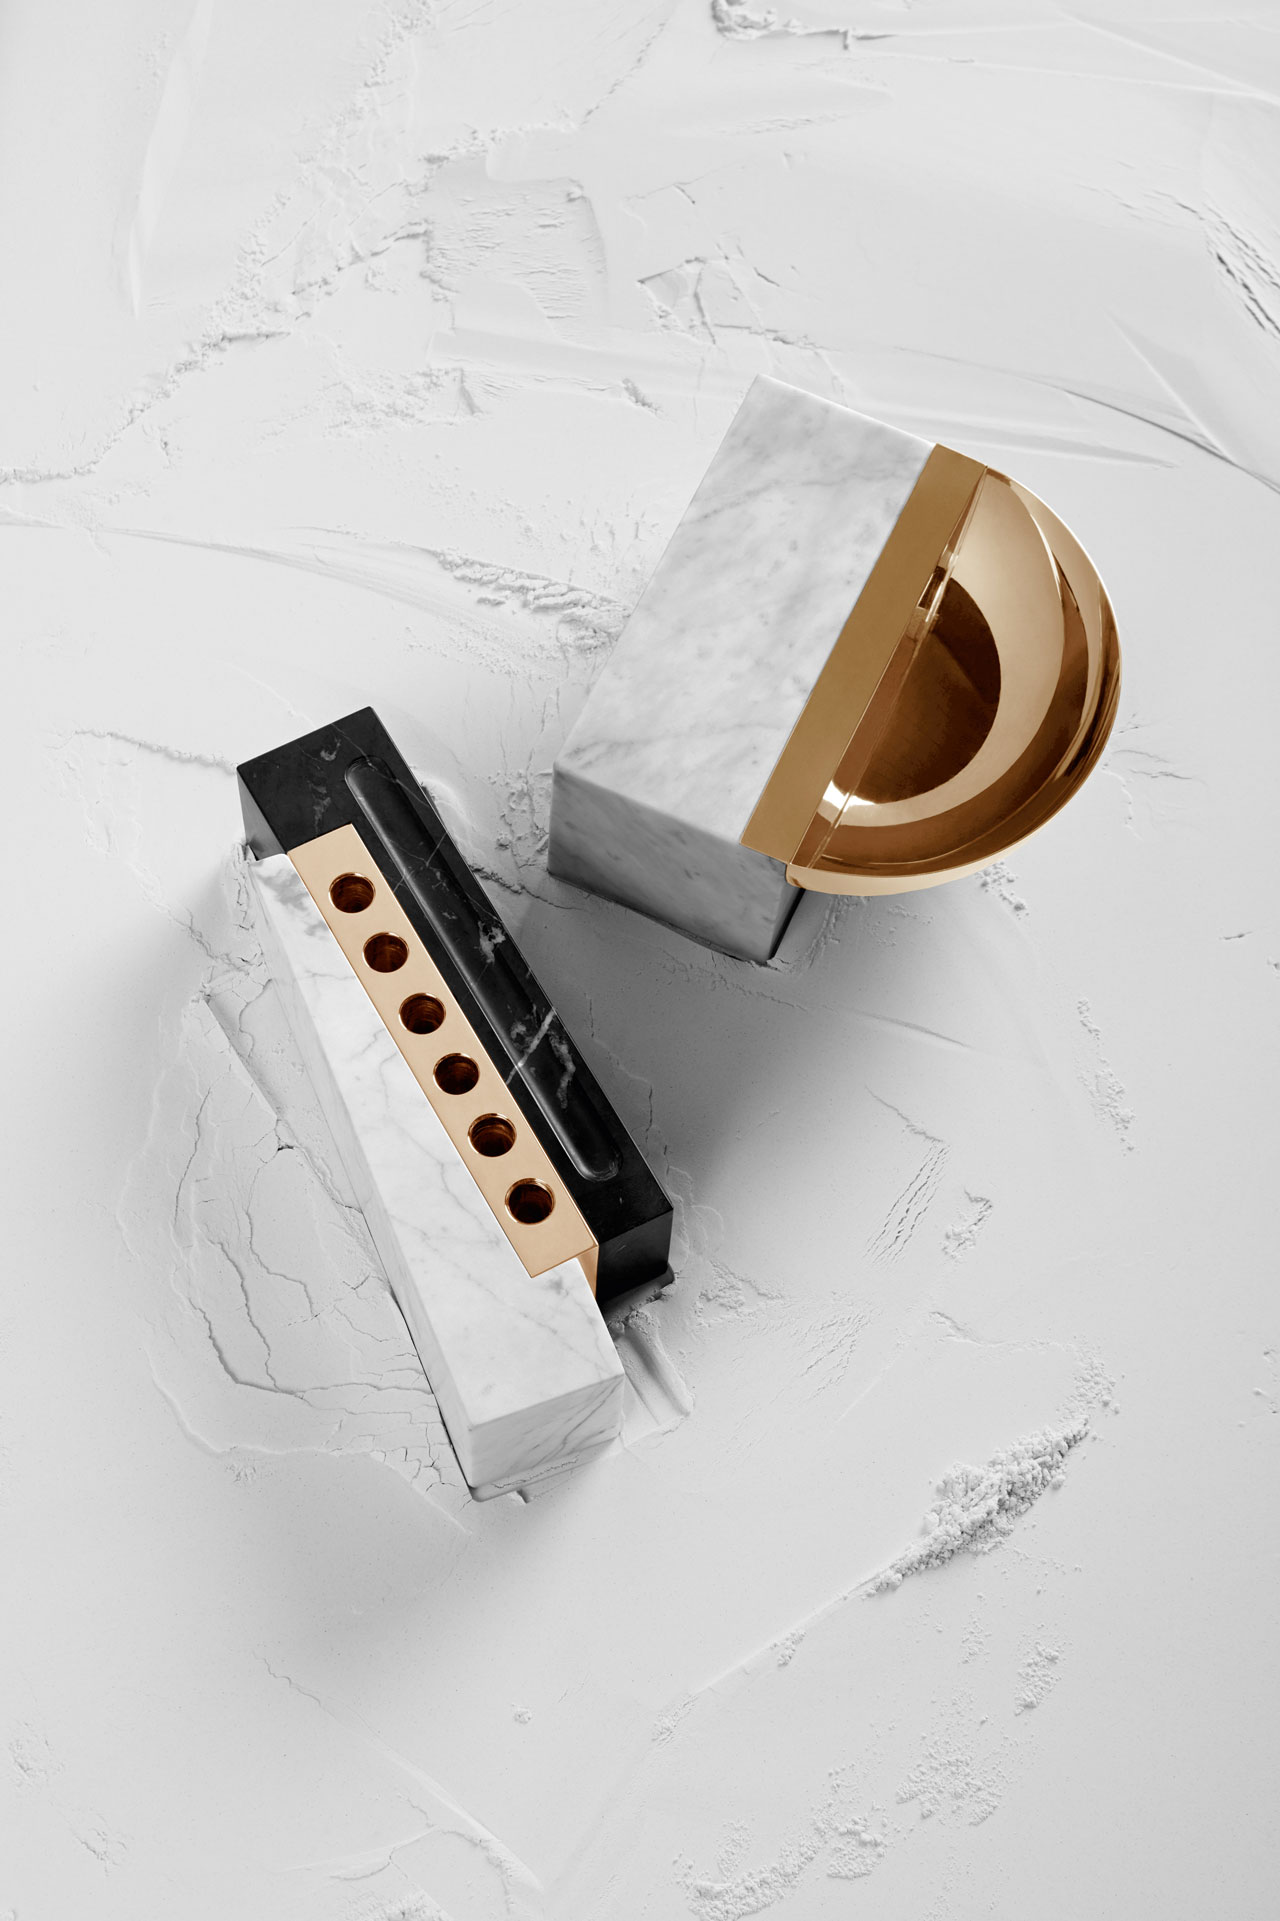 Hemisphere bowl (Bowl in Carrara Marble in honed finishing; metal in Gold plated Brass.) and Interstellar pen holder (two solid blocks of Carrara and Negro Marquina Marble in honed finishing; metal in Yellow Gold 24 K plated Brass) from the home acessories of Ginger & Jagger.